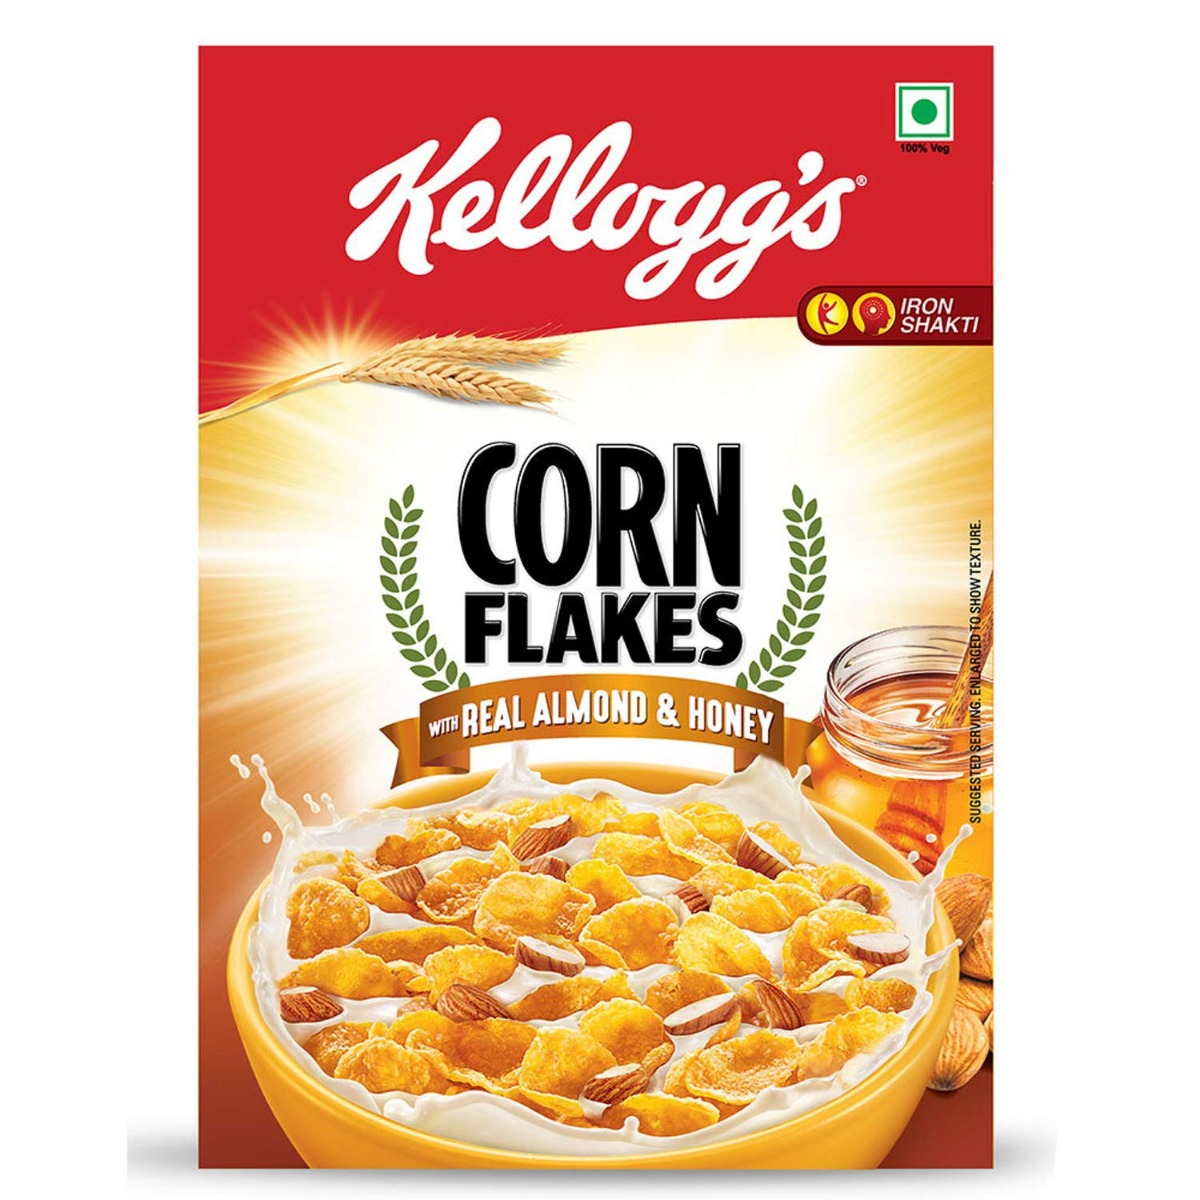 Kellogg's Corn Flakes with Almond and Honey - 300gm